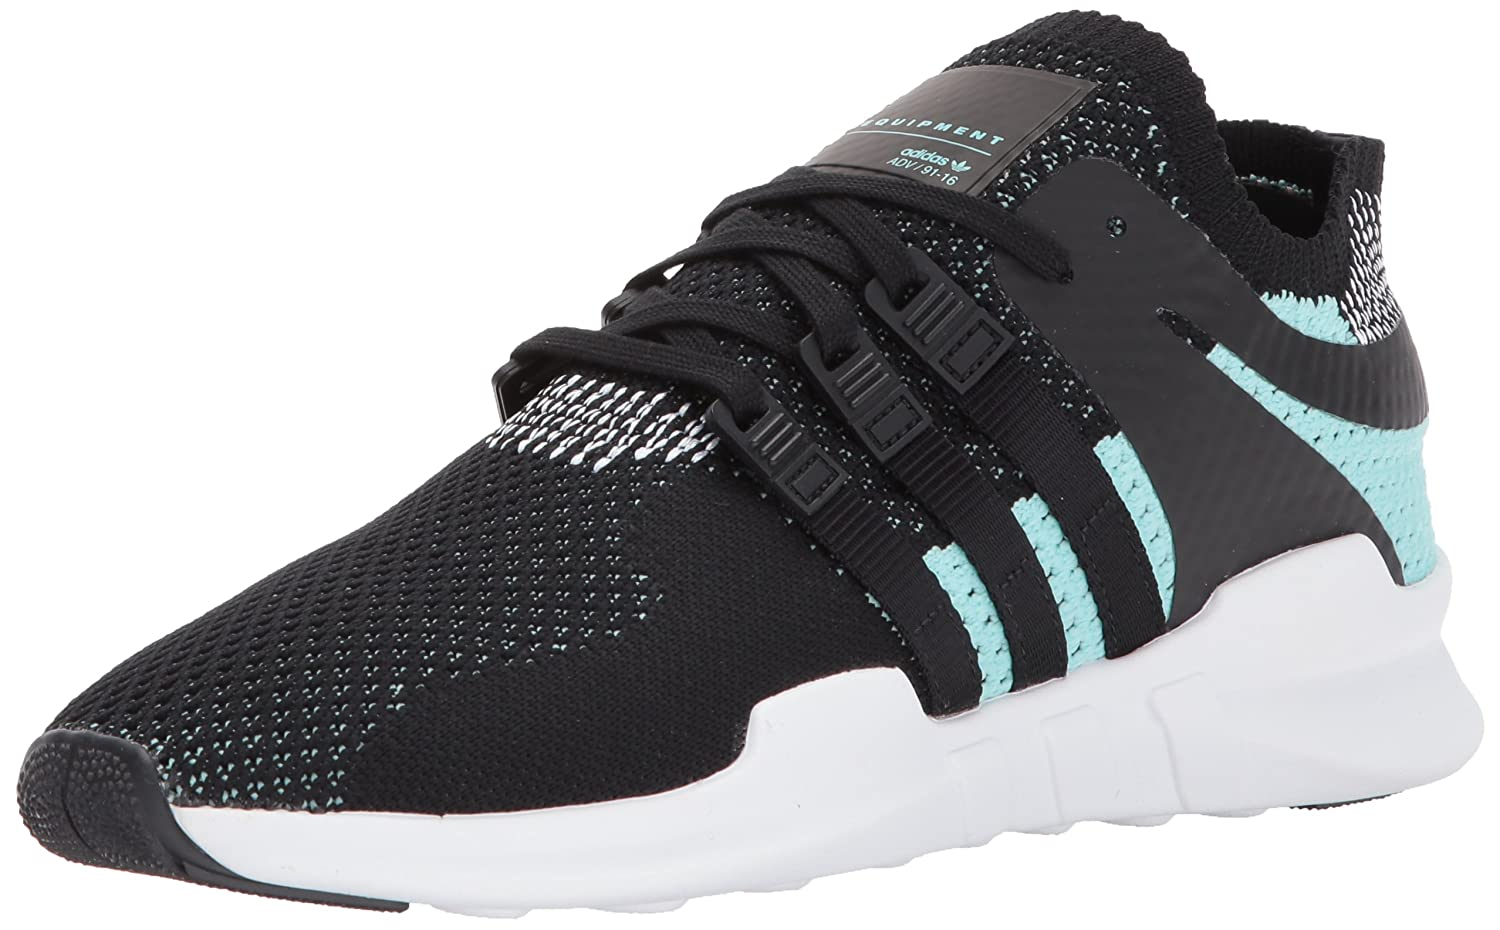 adidas Originals Women's EQT Support Adv PK W B01NBKPDN7 10.5 B(M) US|Black/Black/White